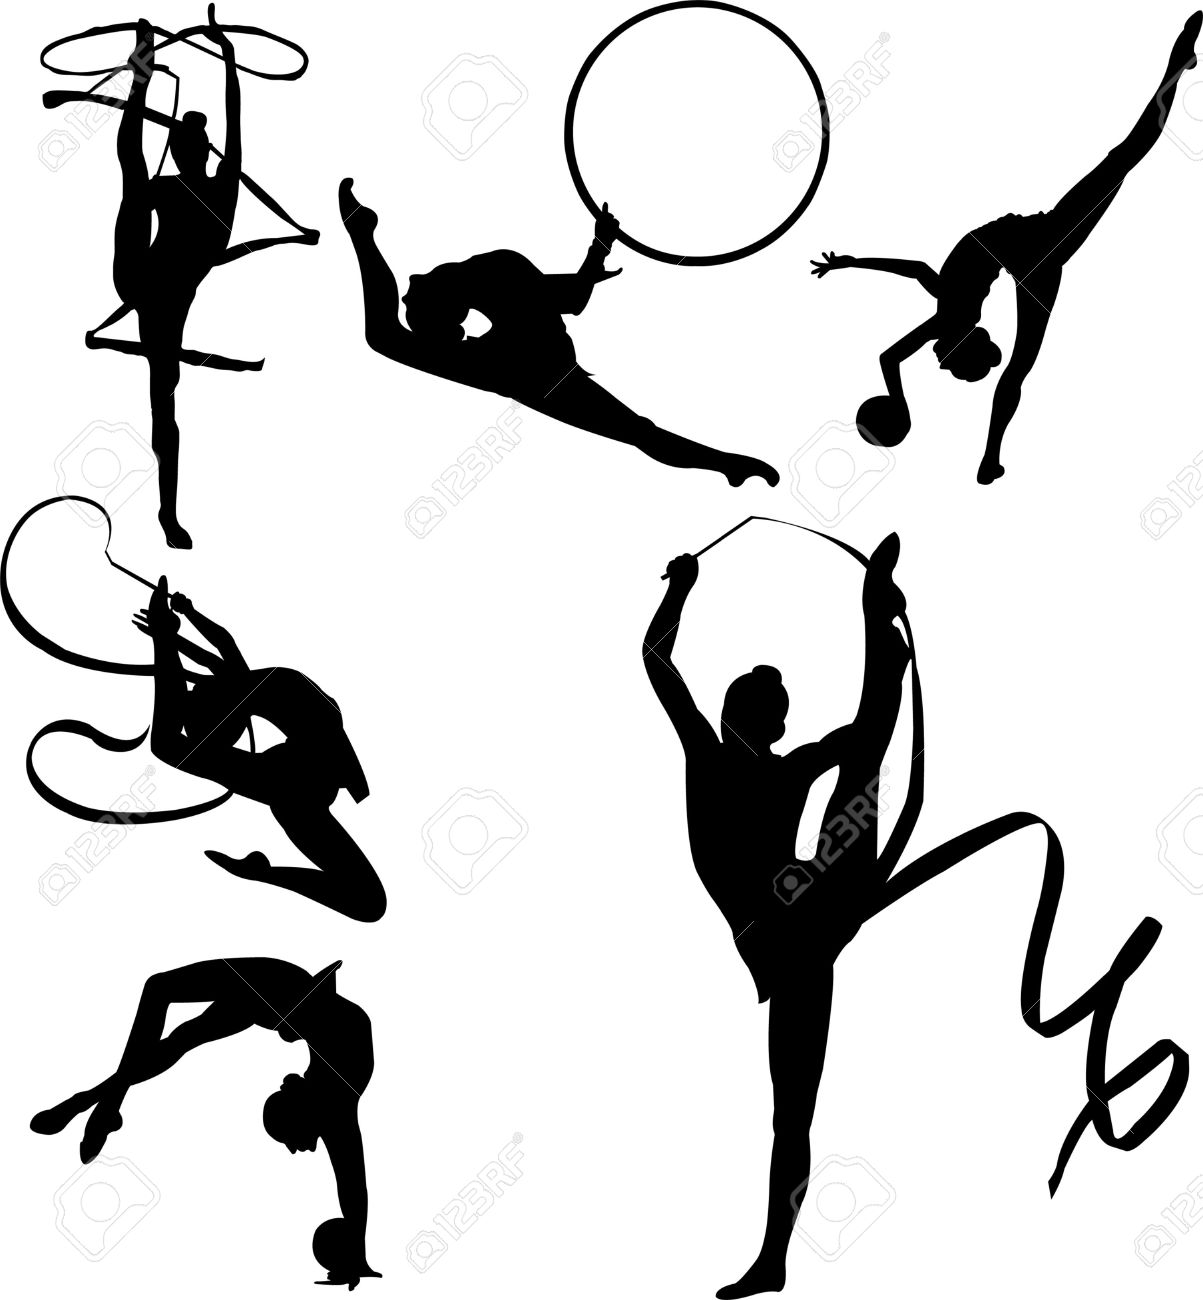 http://previews.123rf.com/images/dazdraperma/dazdraperma0909/dazdraperma090900035/5514008-Vector-silhouettes-of-six-rhythmic-gymnasts-with-apparatus-including-ribbon-and-ball-Stock-Vector.jpg